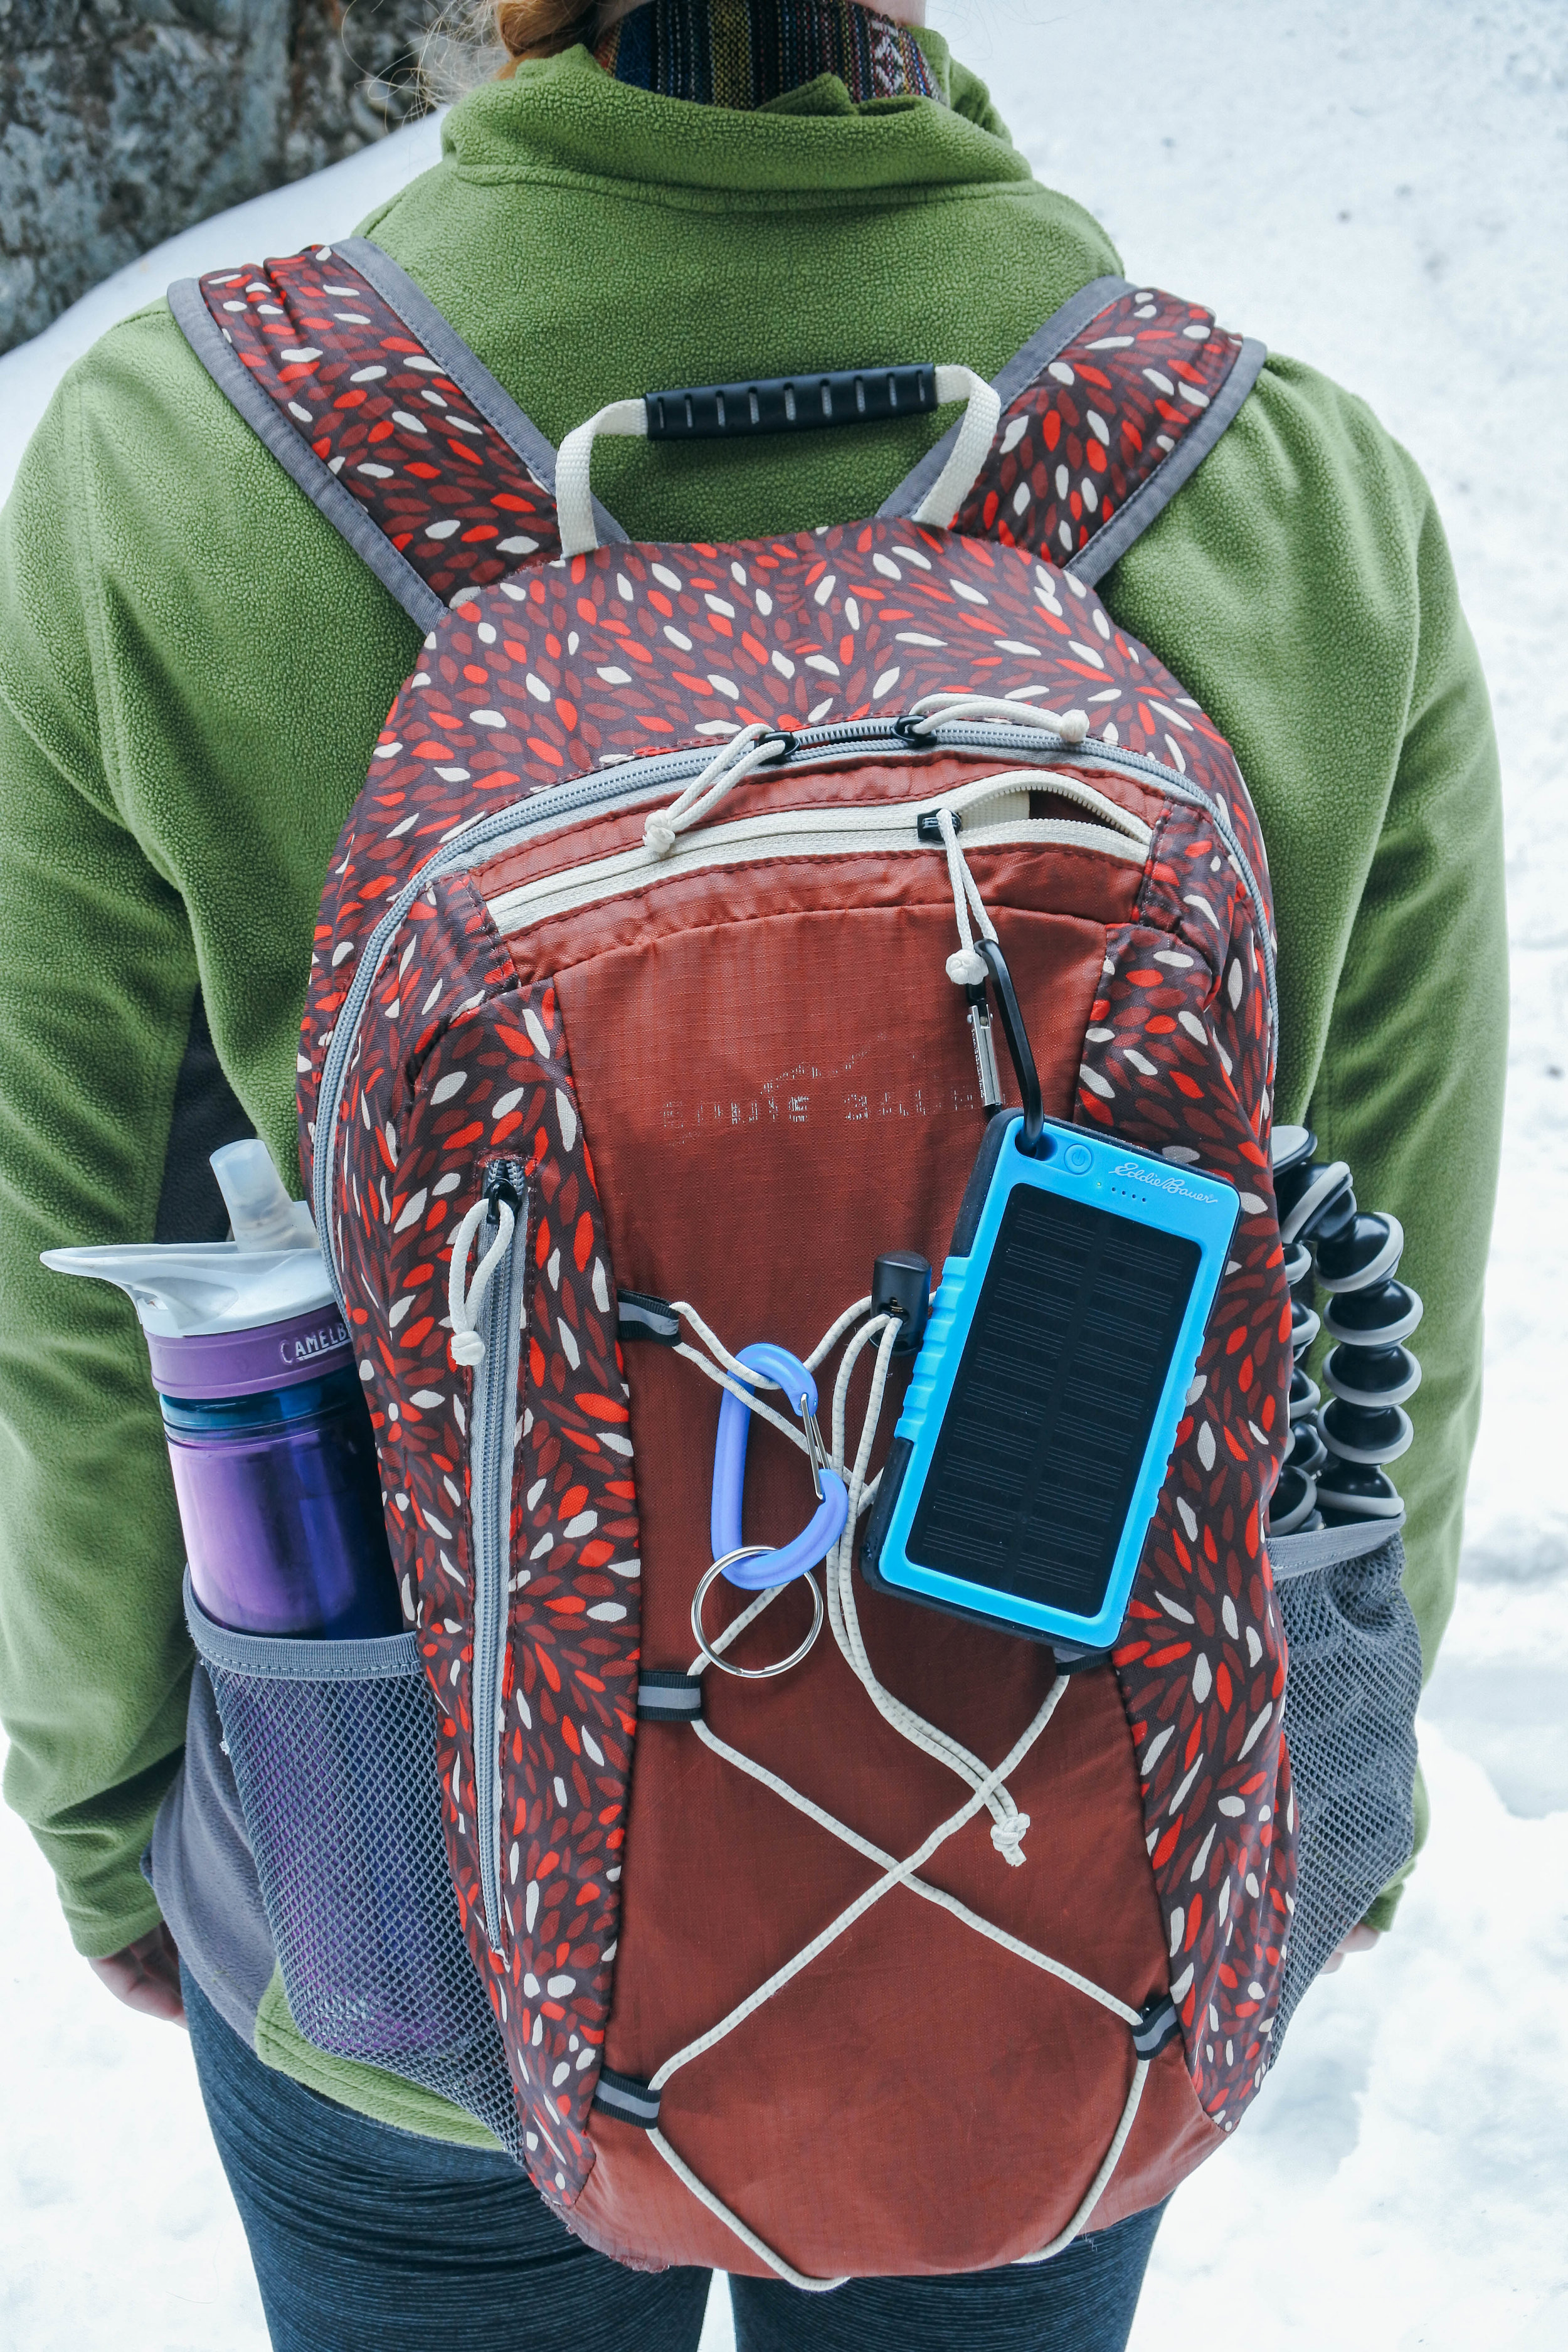 All packed up for a winter adventure (and featuring the Eddie Bauer solar charger my sister got me for Christmas!)